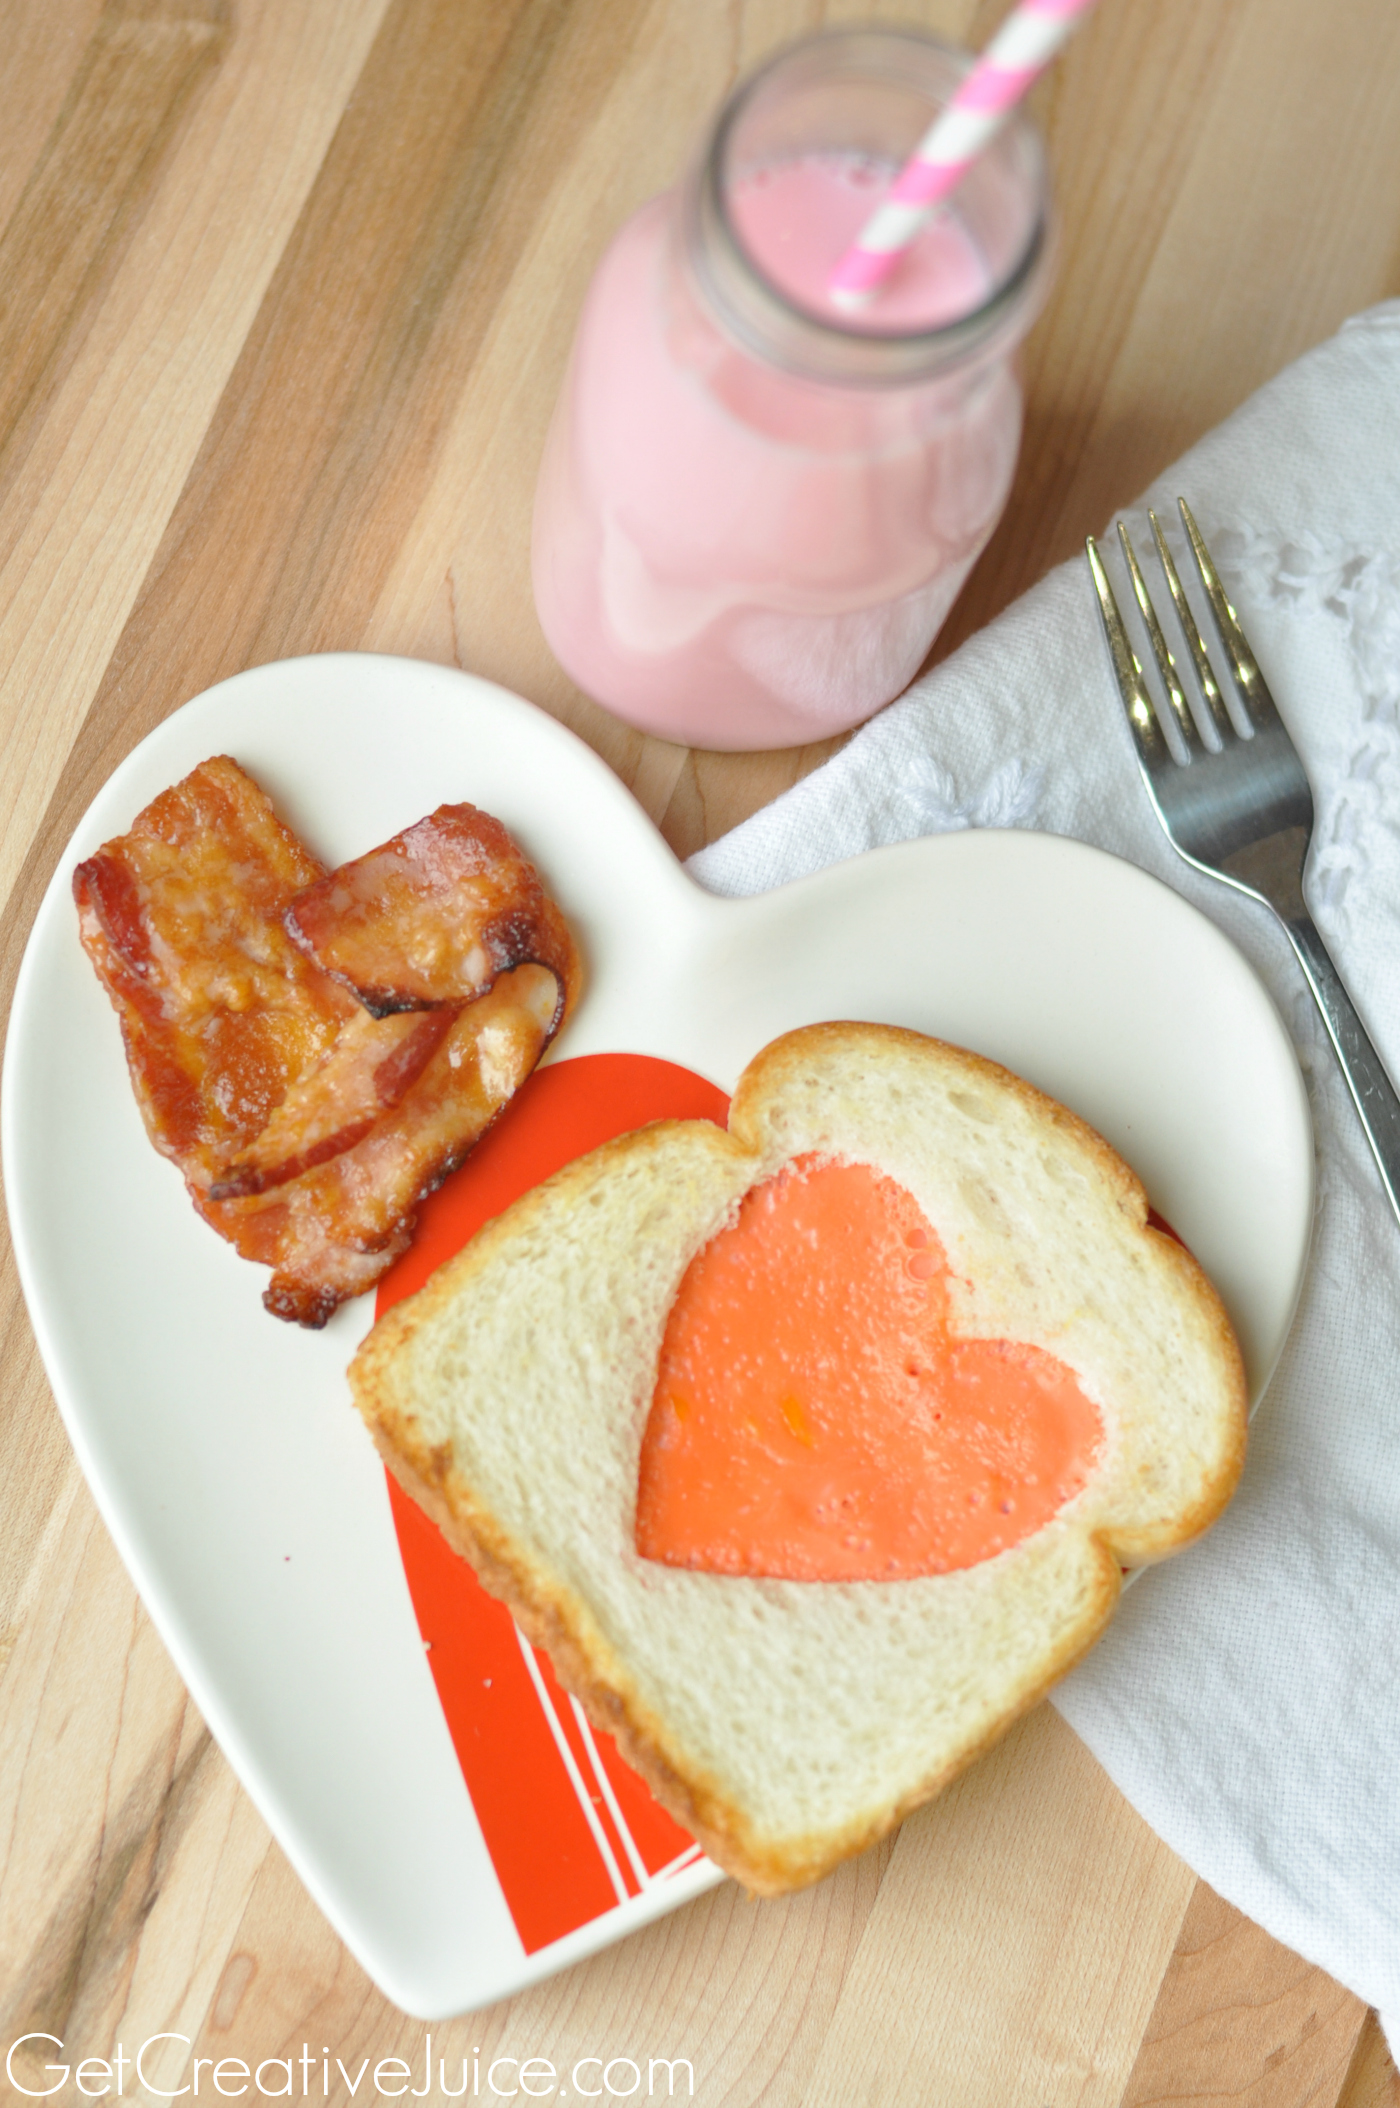 valentine's day breakfast ideas - creative juice, Ideas